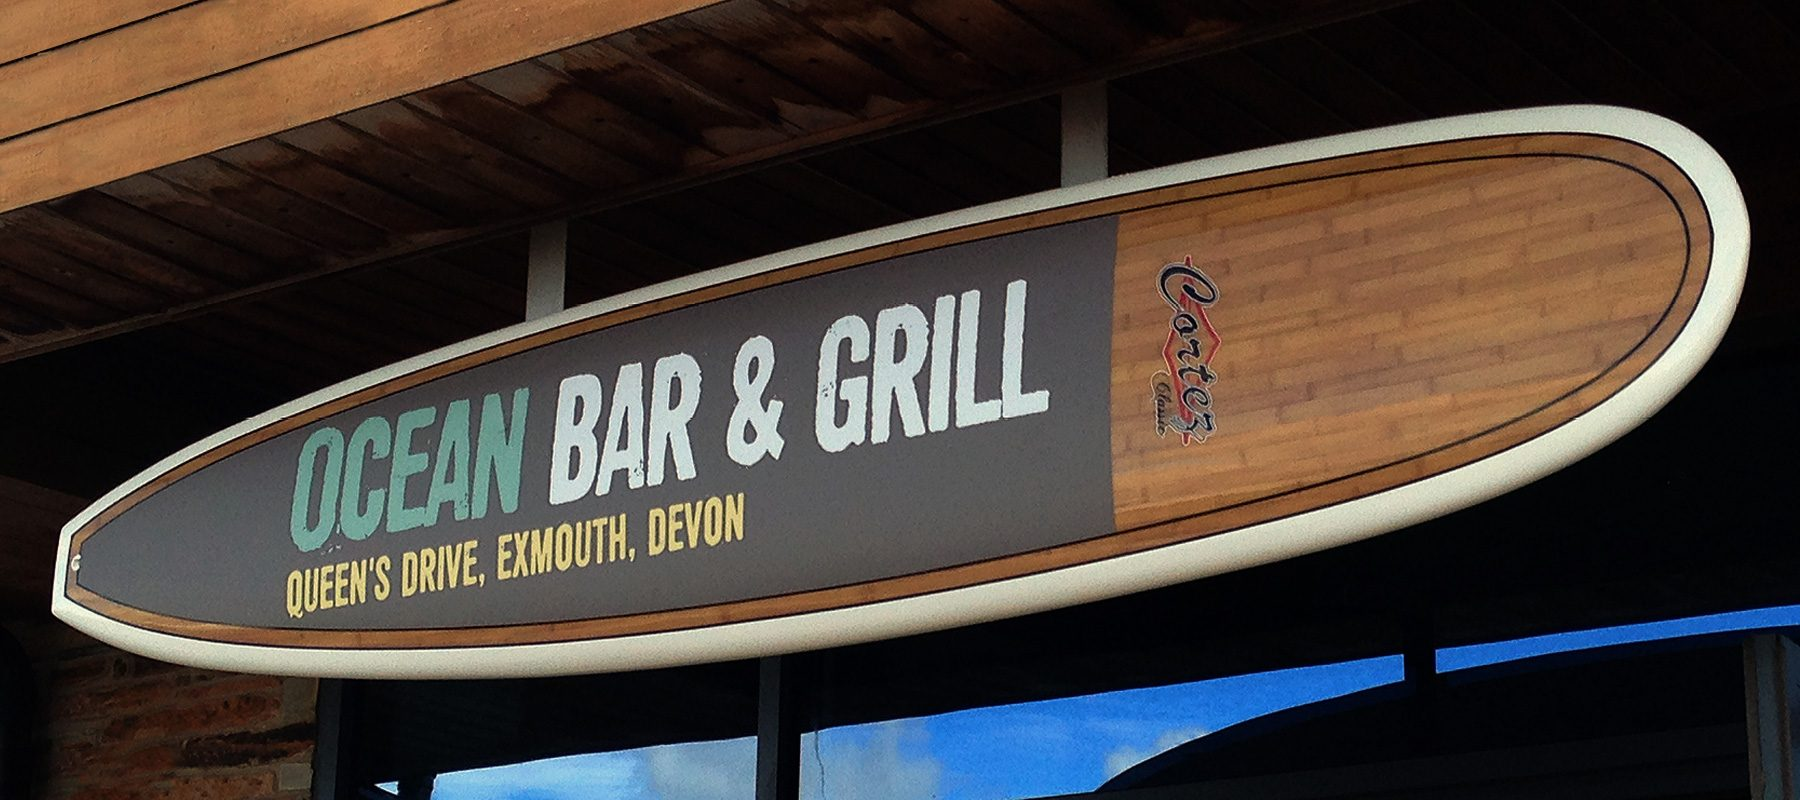 ocean exmouth logo brand design bar grill restaurant surfing retro